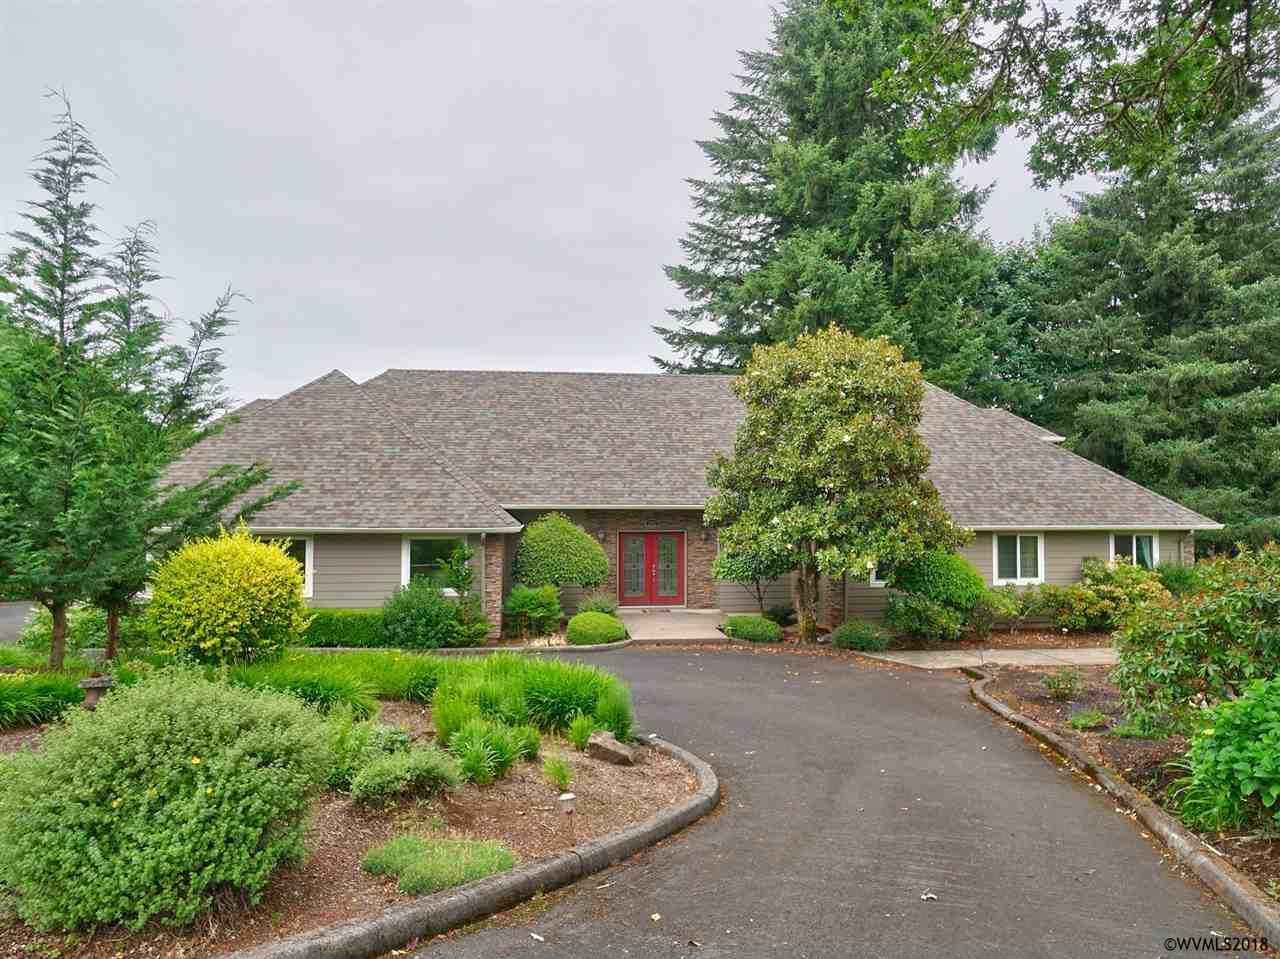 3253 Tranquility Dr SE, Salem in Marion County, OR 97317 Home for Sale